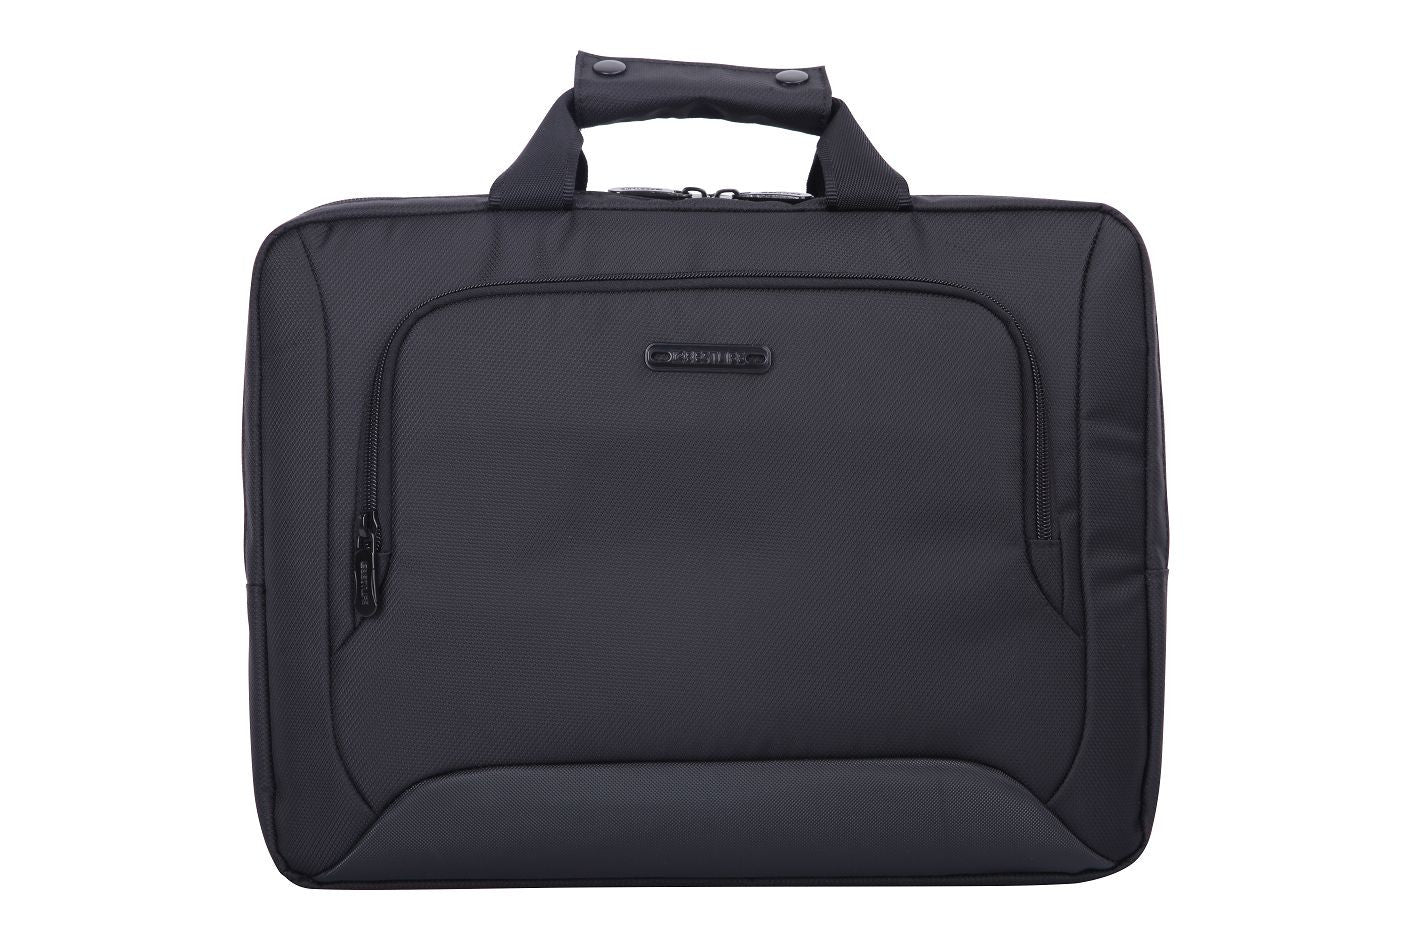 Bestlife Briefcase BBC-3158-15.6'' (Black) - OBM Distribution, Inc.